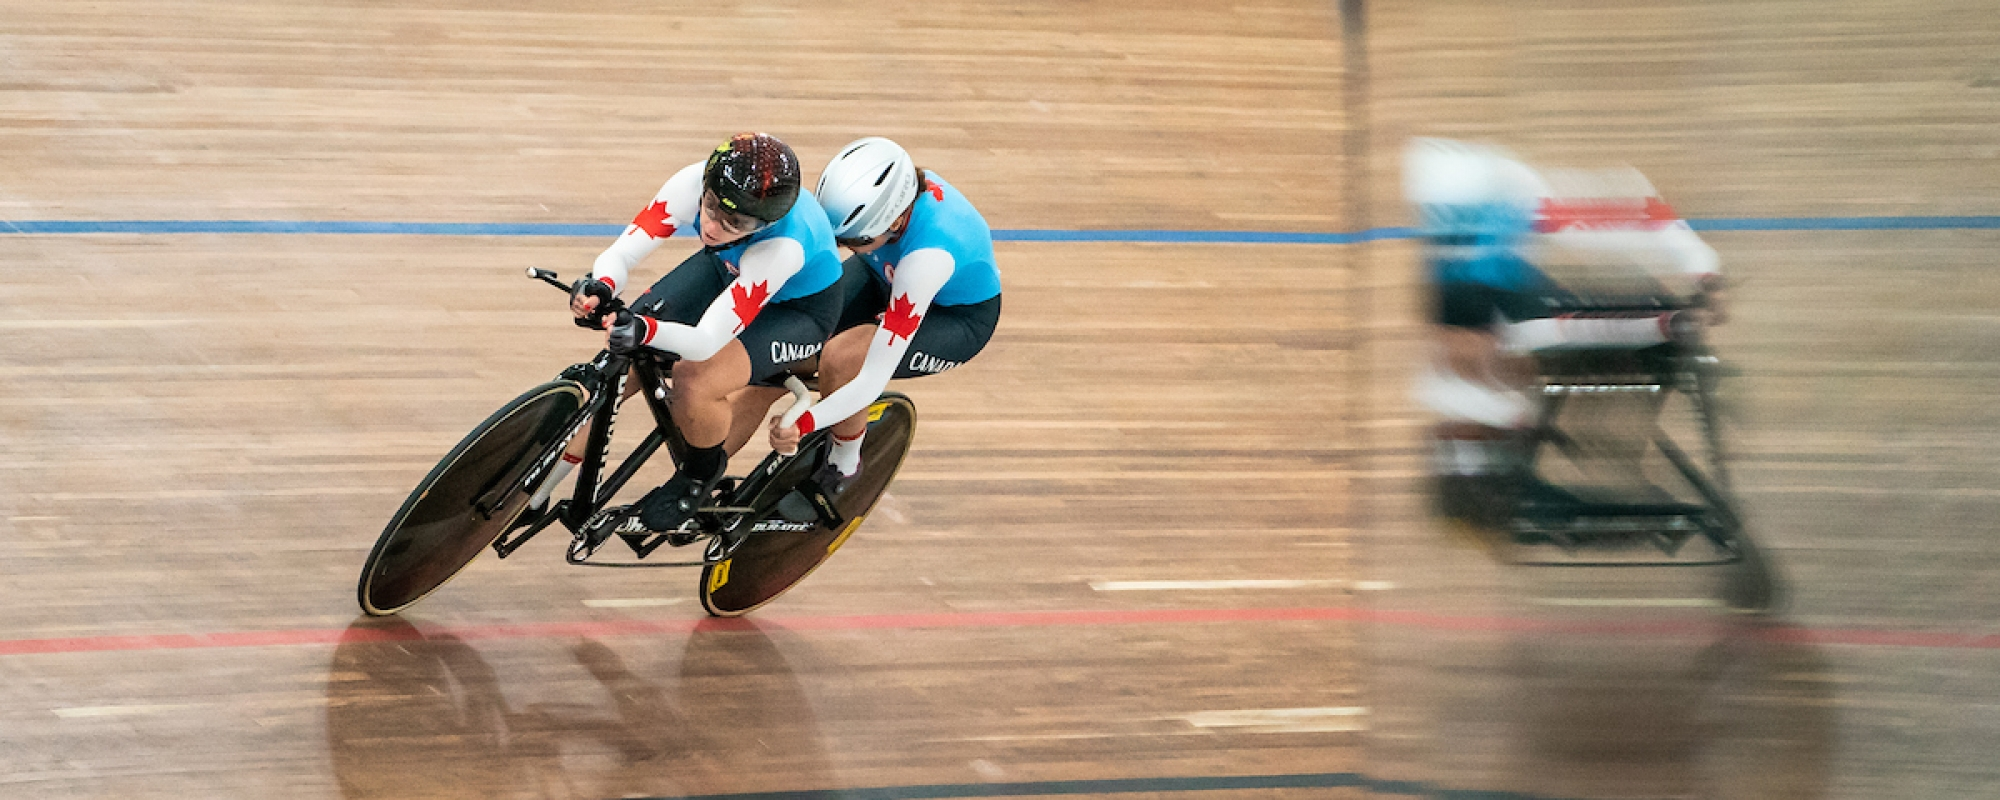 Annie Bouchard and pilot Evelyne Gagnon compete in tandem cycling at the Lima 2019 games